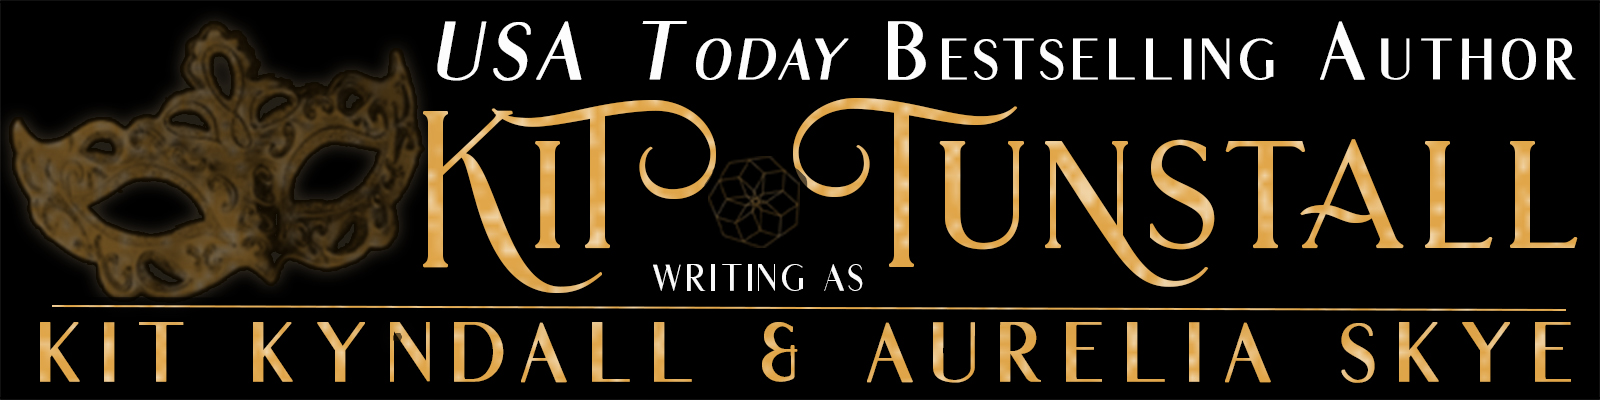 Author Kit Tunstall's Website